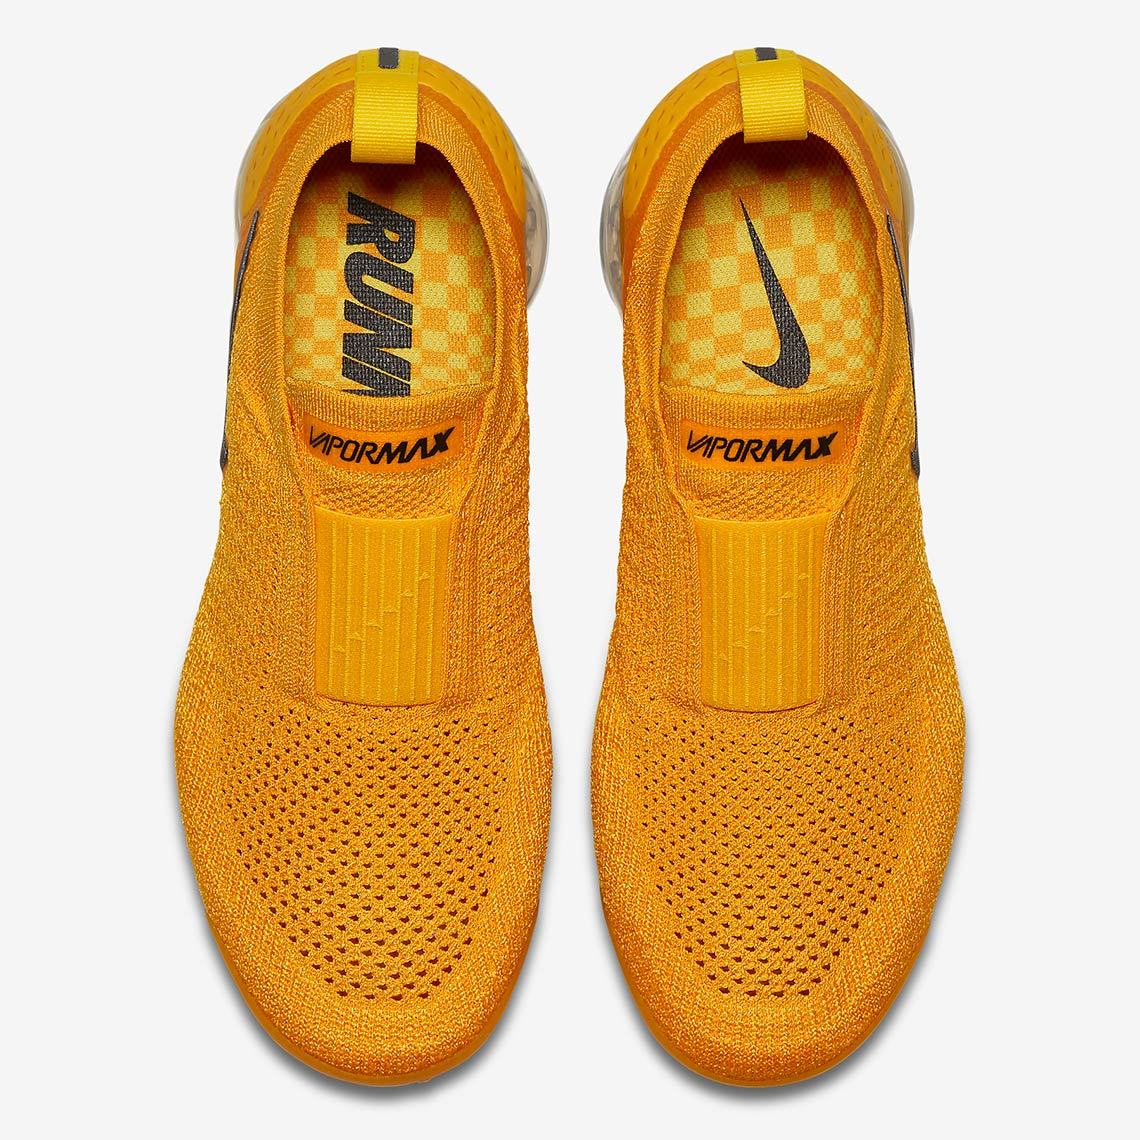 Excel In Sunshine Style In The 'University Gold' Nike Vapormax Mox 2